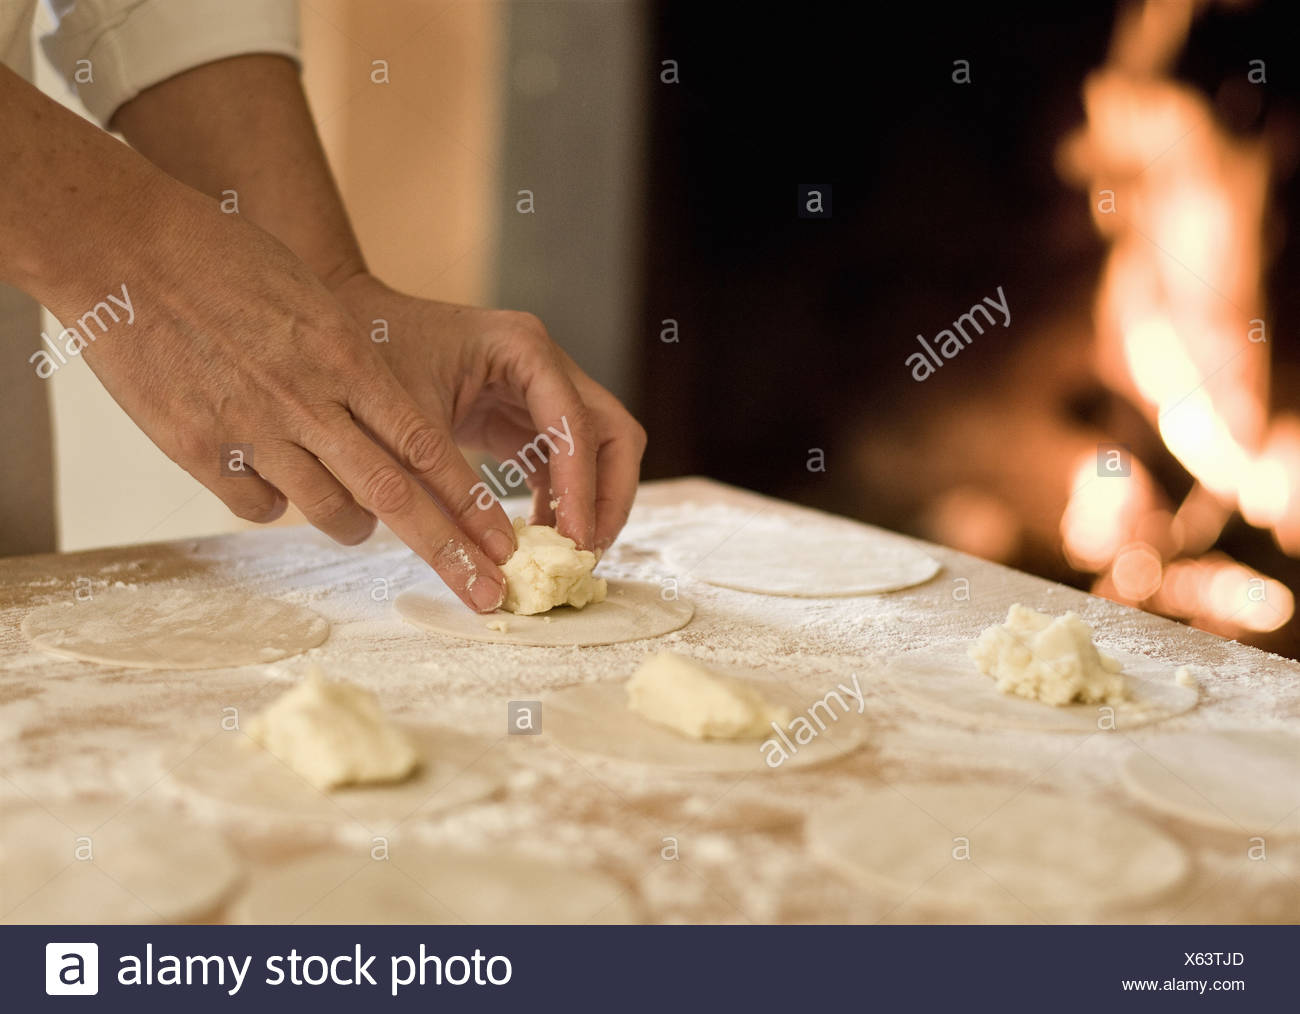 Cook filling pasta dough in kitchen - Stock Image